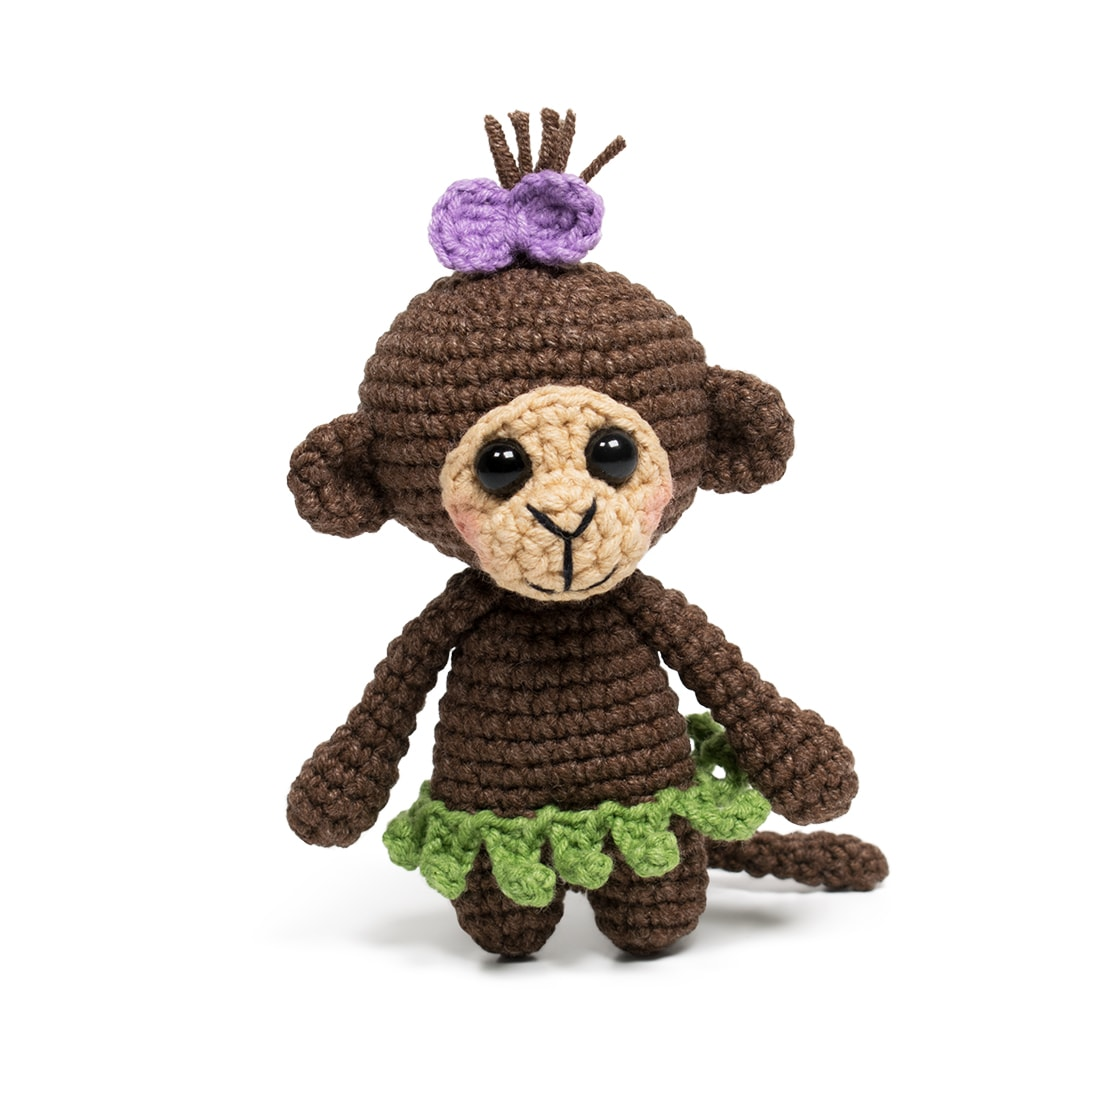 Cheeky Little Monkey Amigurumi Free Crochet Pattern ⋆ Crochet Kingdom | 1100x1100